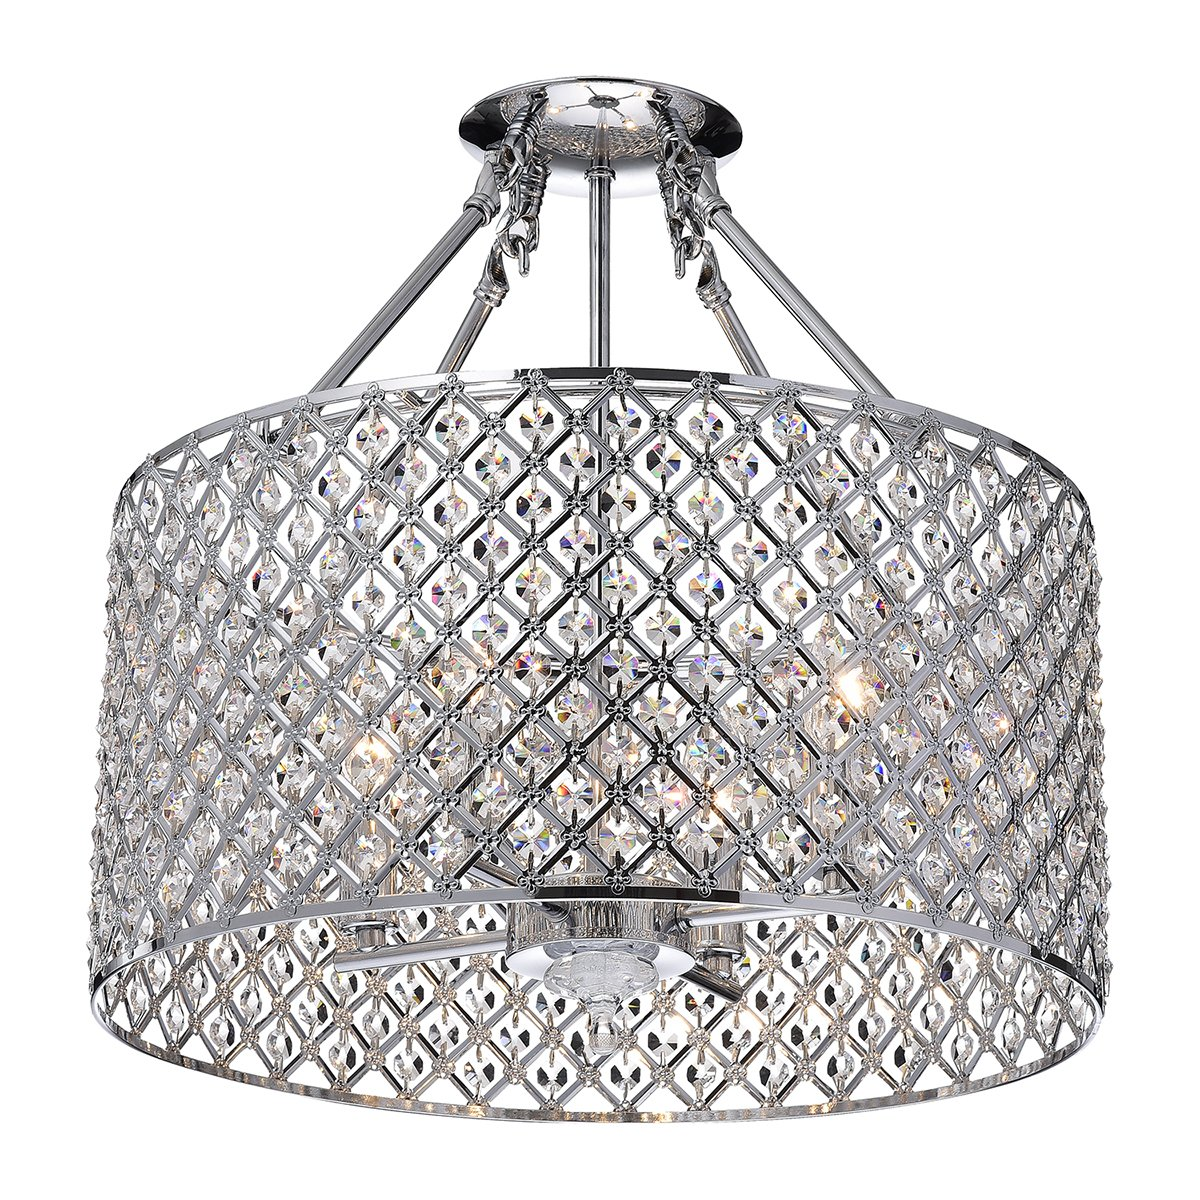 Marya 4 Light Chrome Round Shade Crystal Semi Flush Mount Chandelier Ceiling Fixture Beaded Drum Com